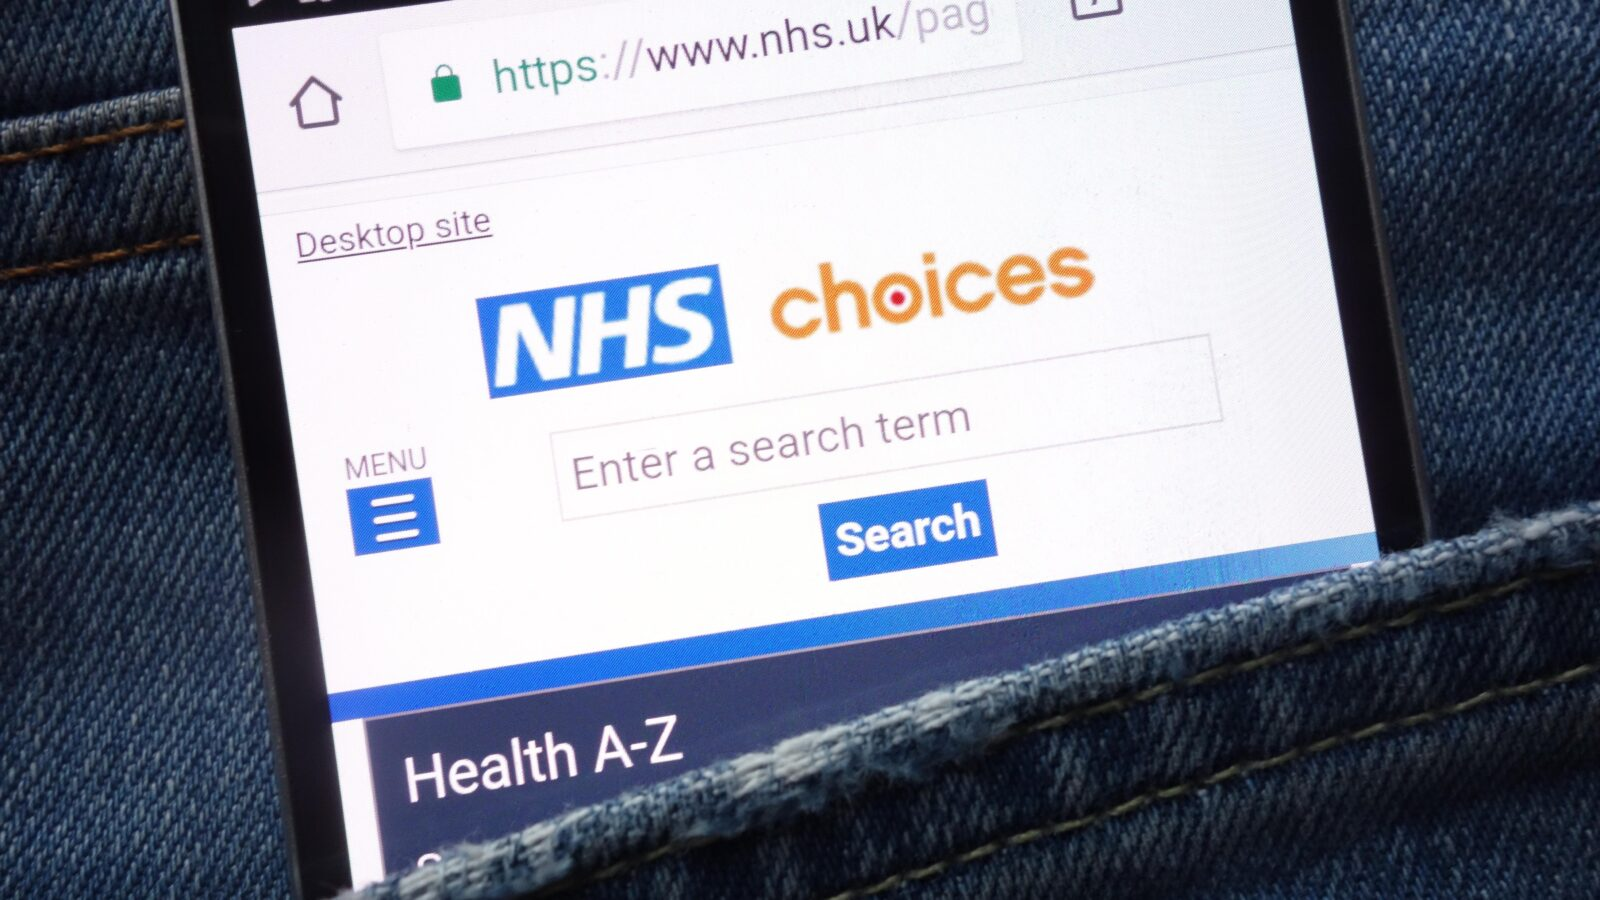 NHS Choices website on smartphone